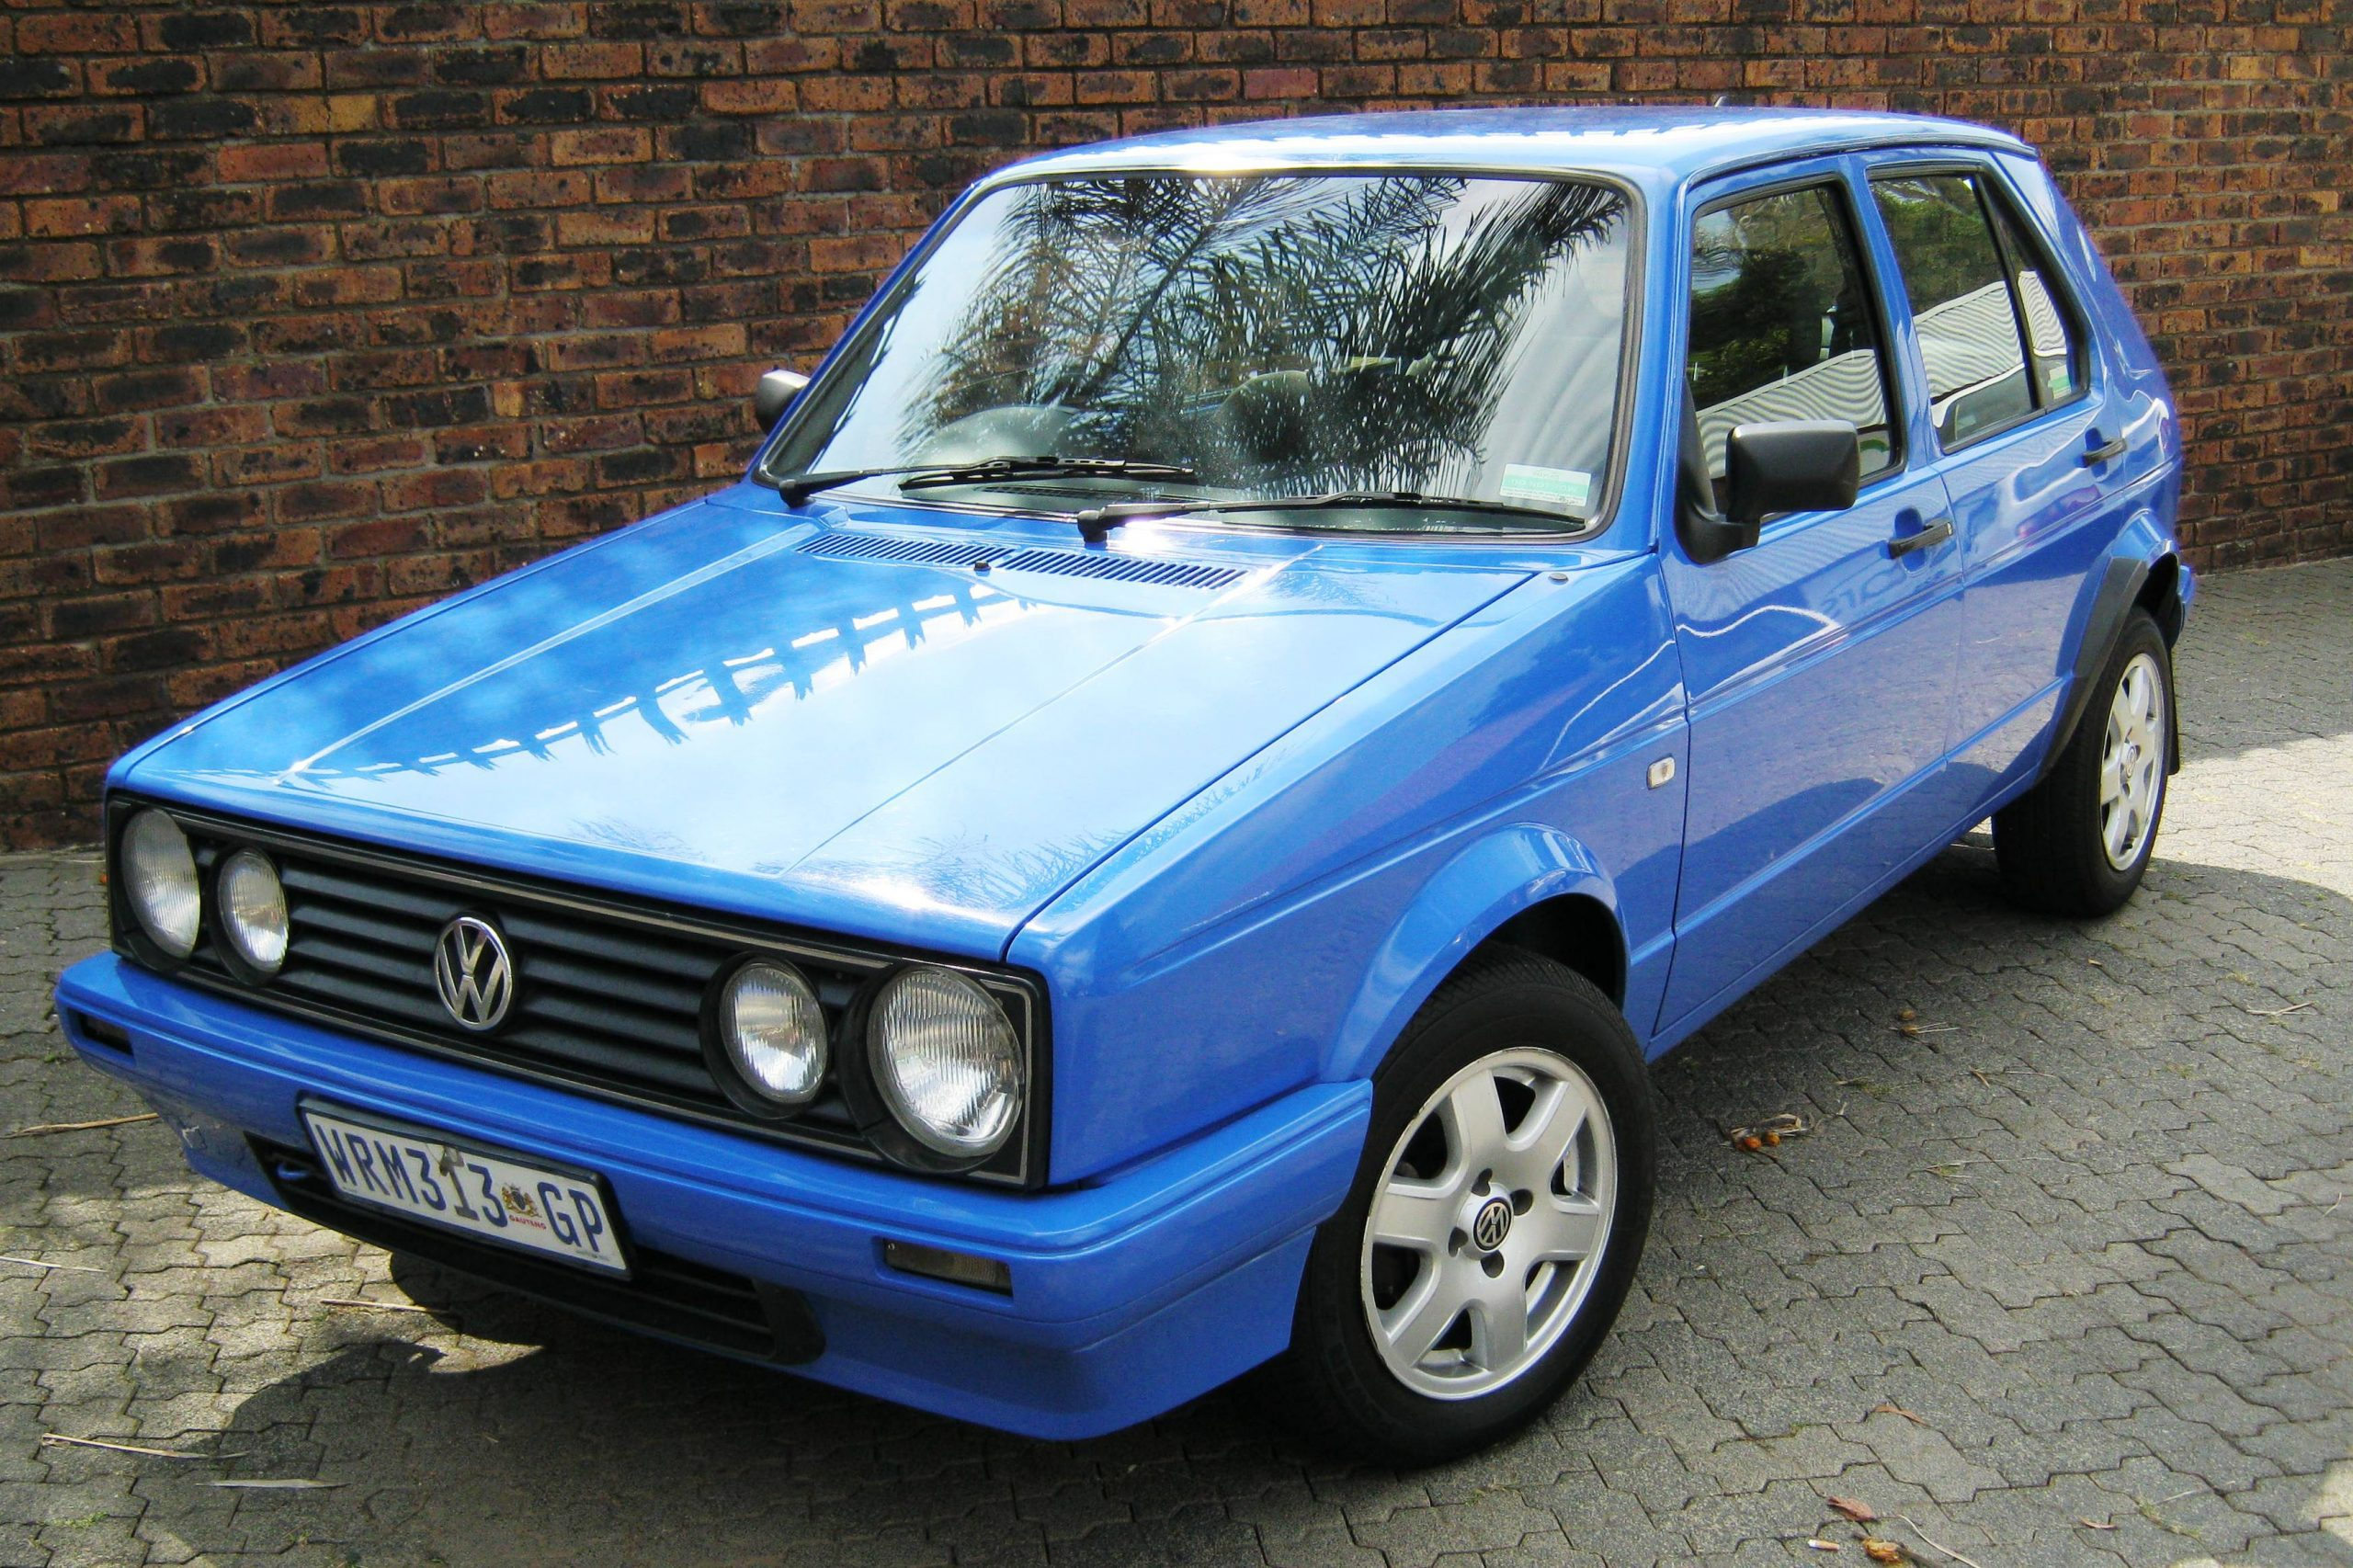 Volkswagen Chico 1.4 Blue